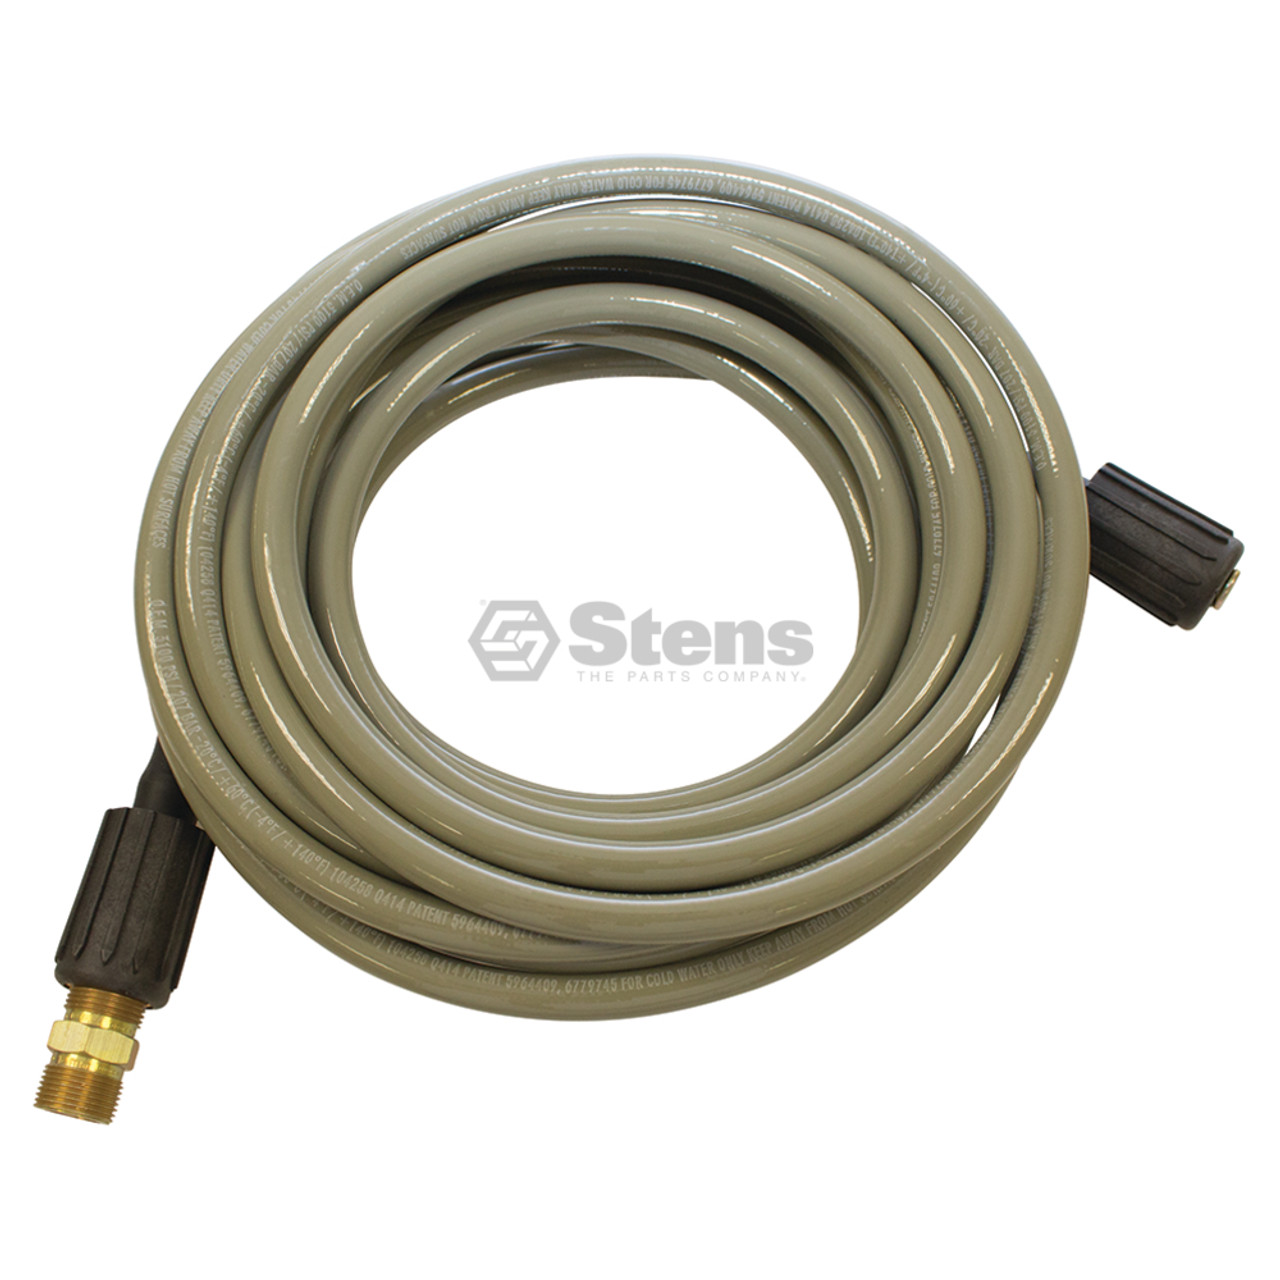 Pressure Washer Hose 25 Feet Long, High Pressure, 3100 PSI, High  Flexibility, Kink Resistance, Designed to Fit Most Gas Pressure Washers,  Non Marring